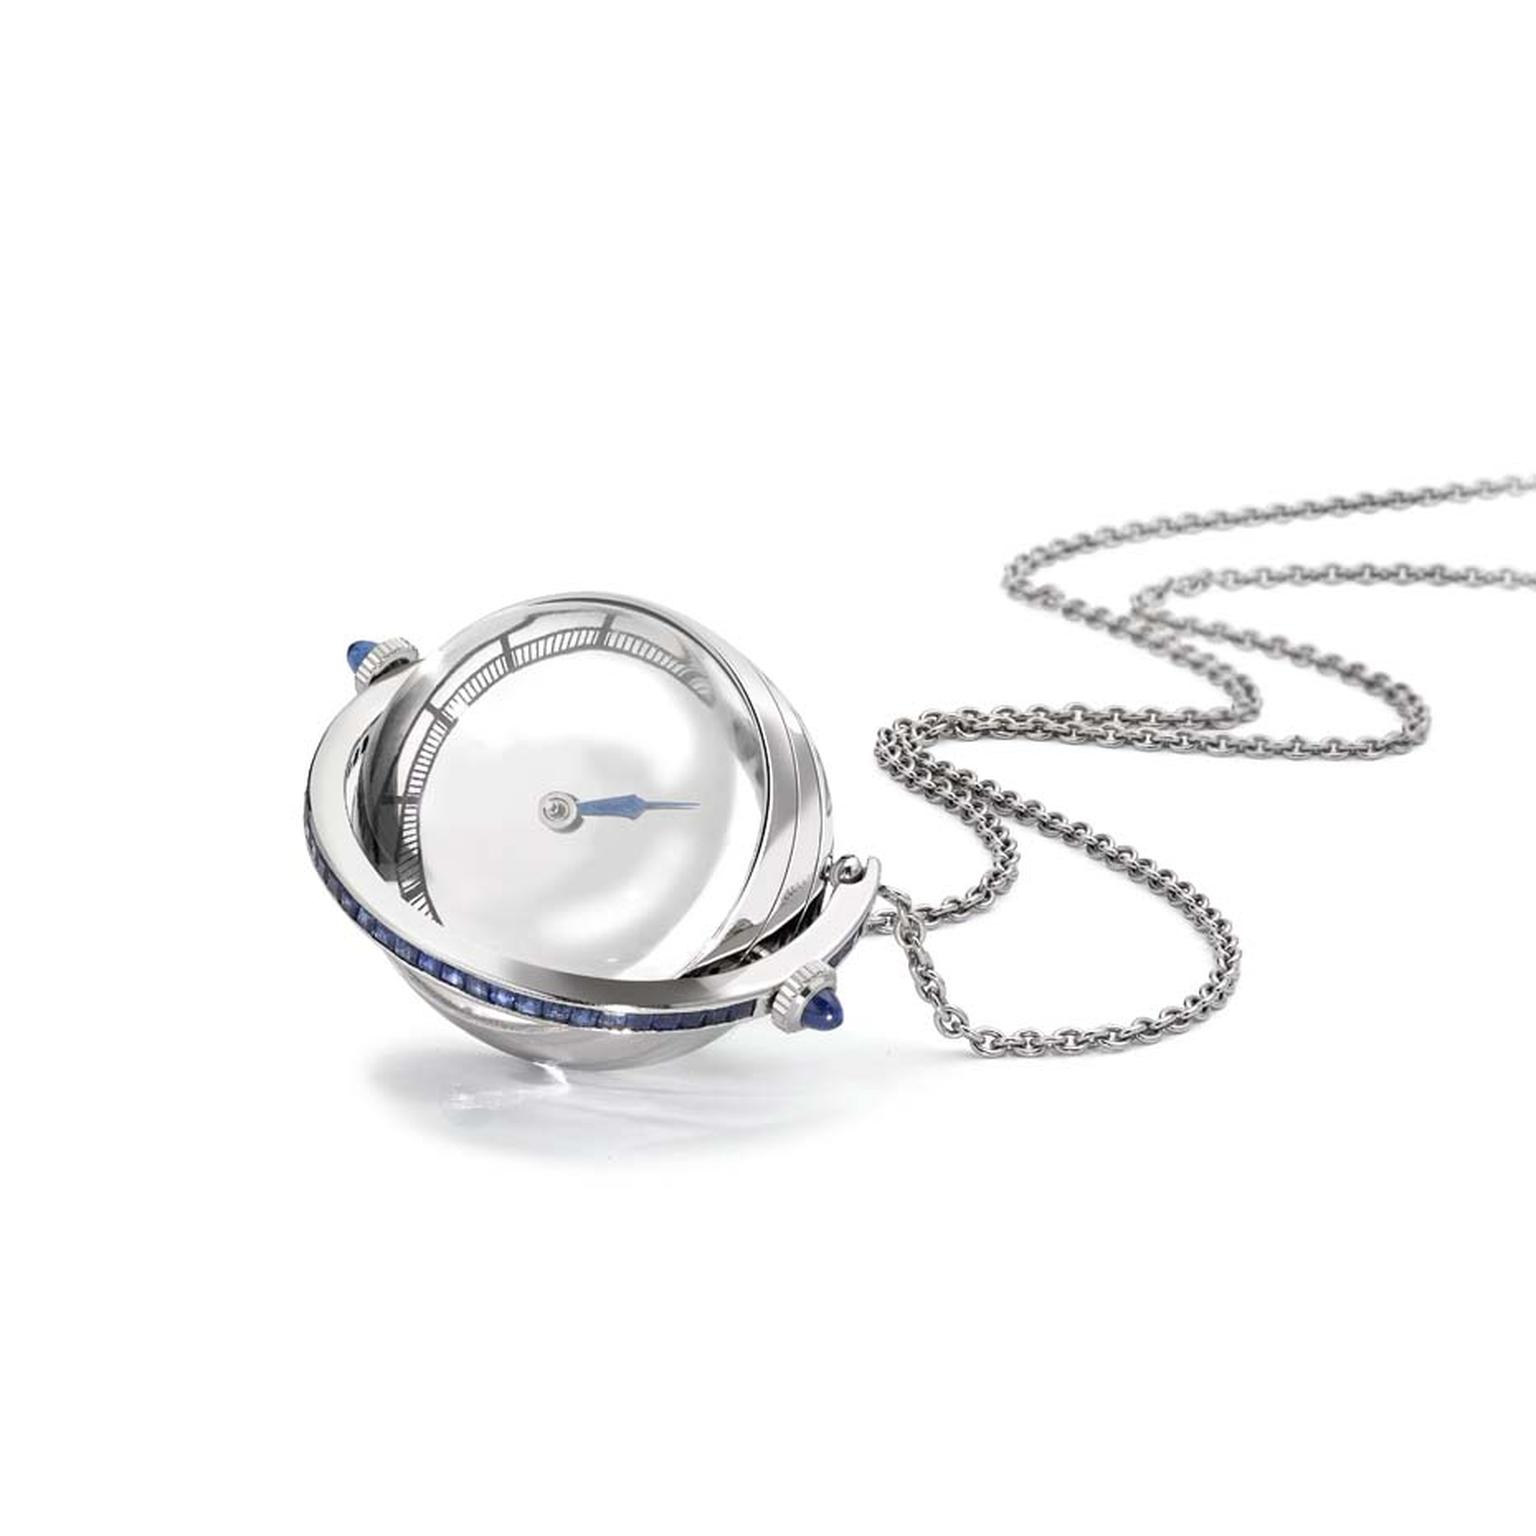 The platinum Struthers London Stella pendant watch featuring sapphires and diamonds won the prestigious Lonmin Design Innovation Award.